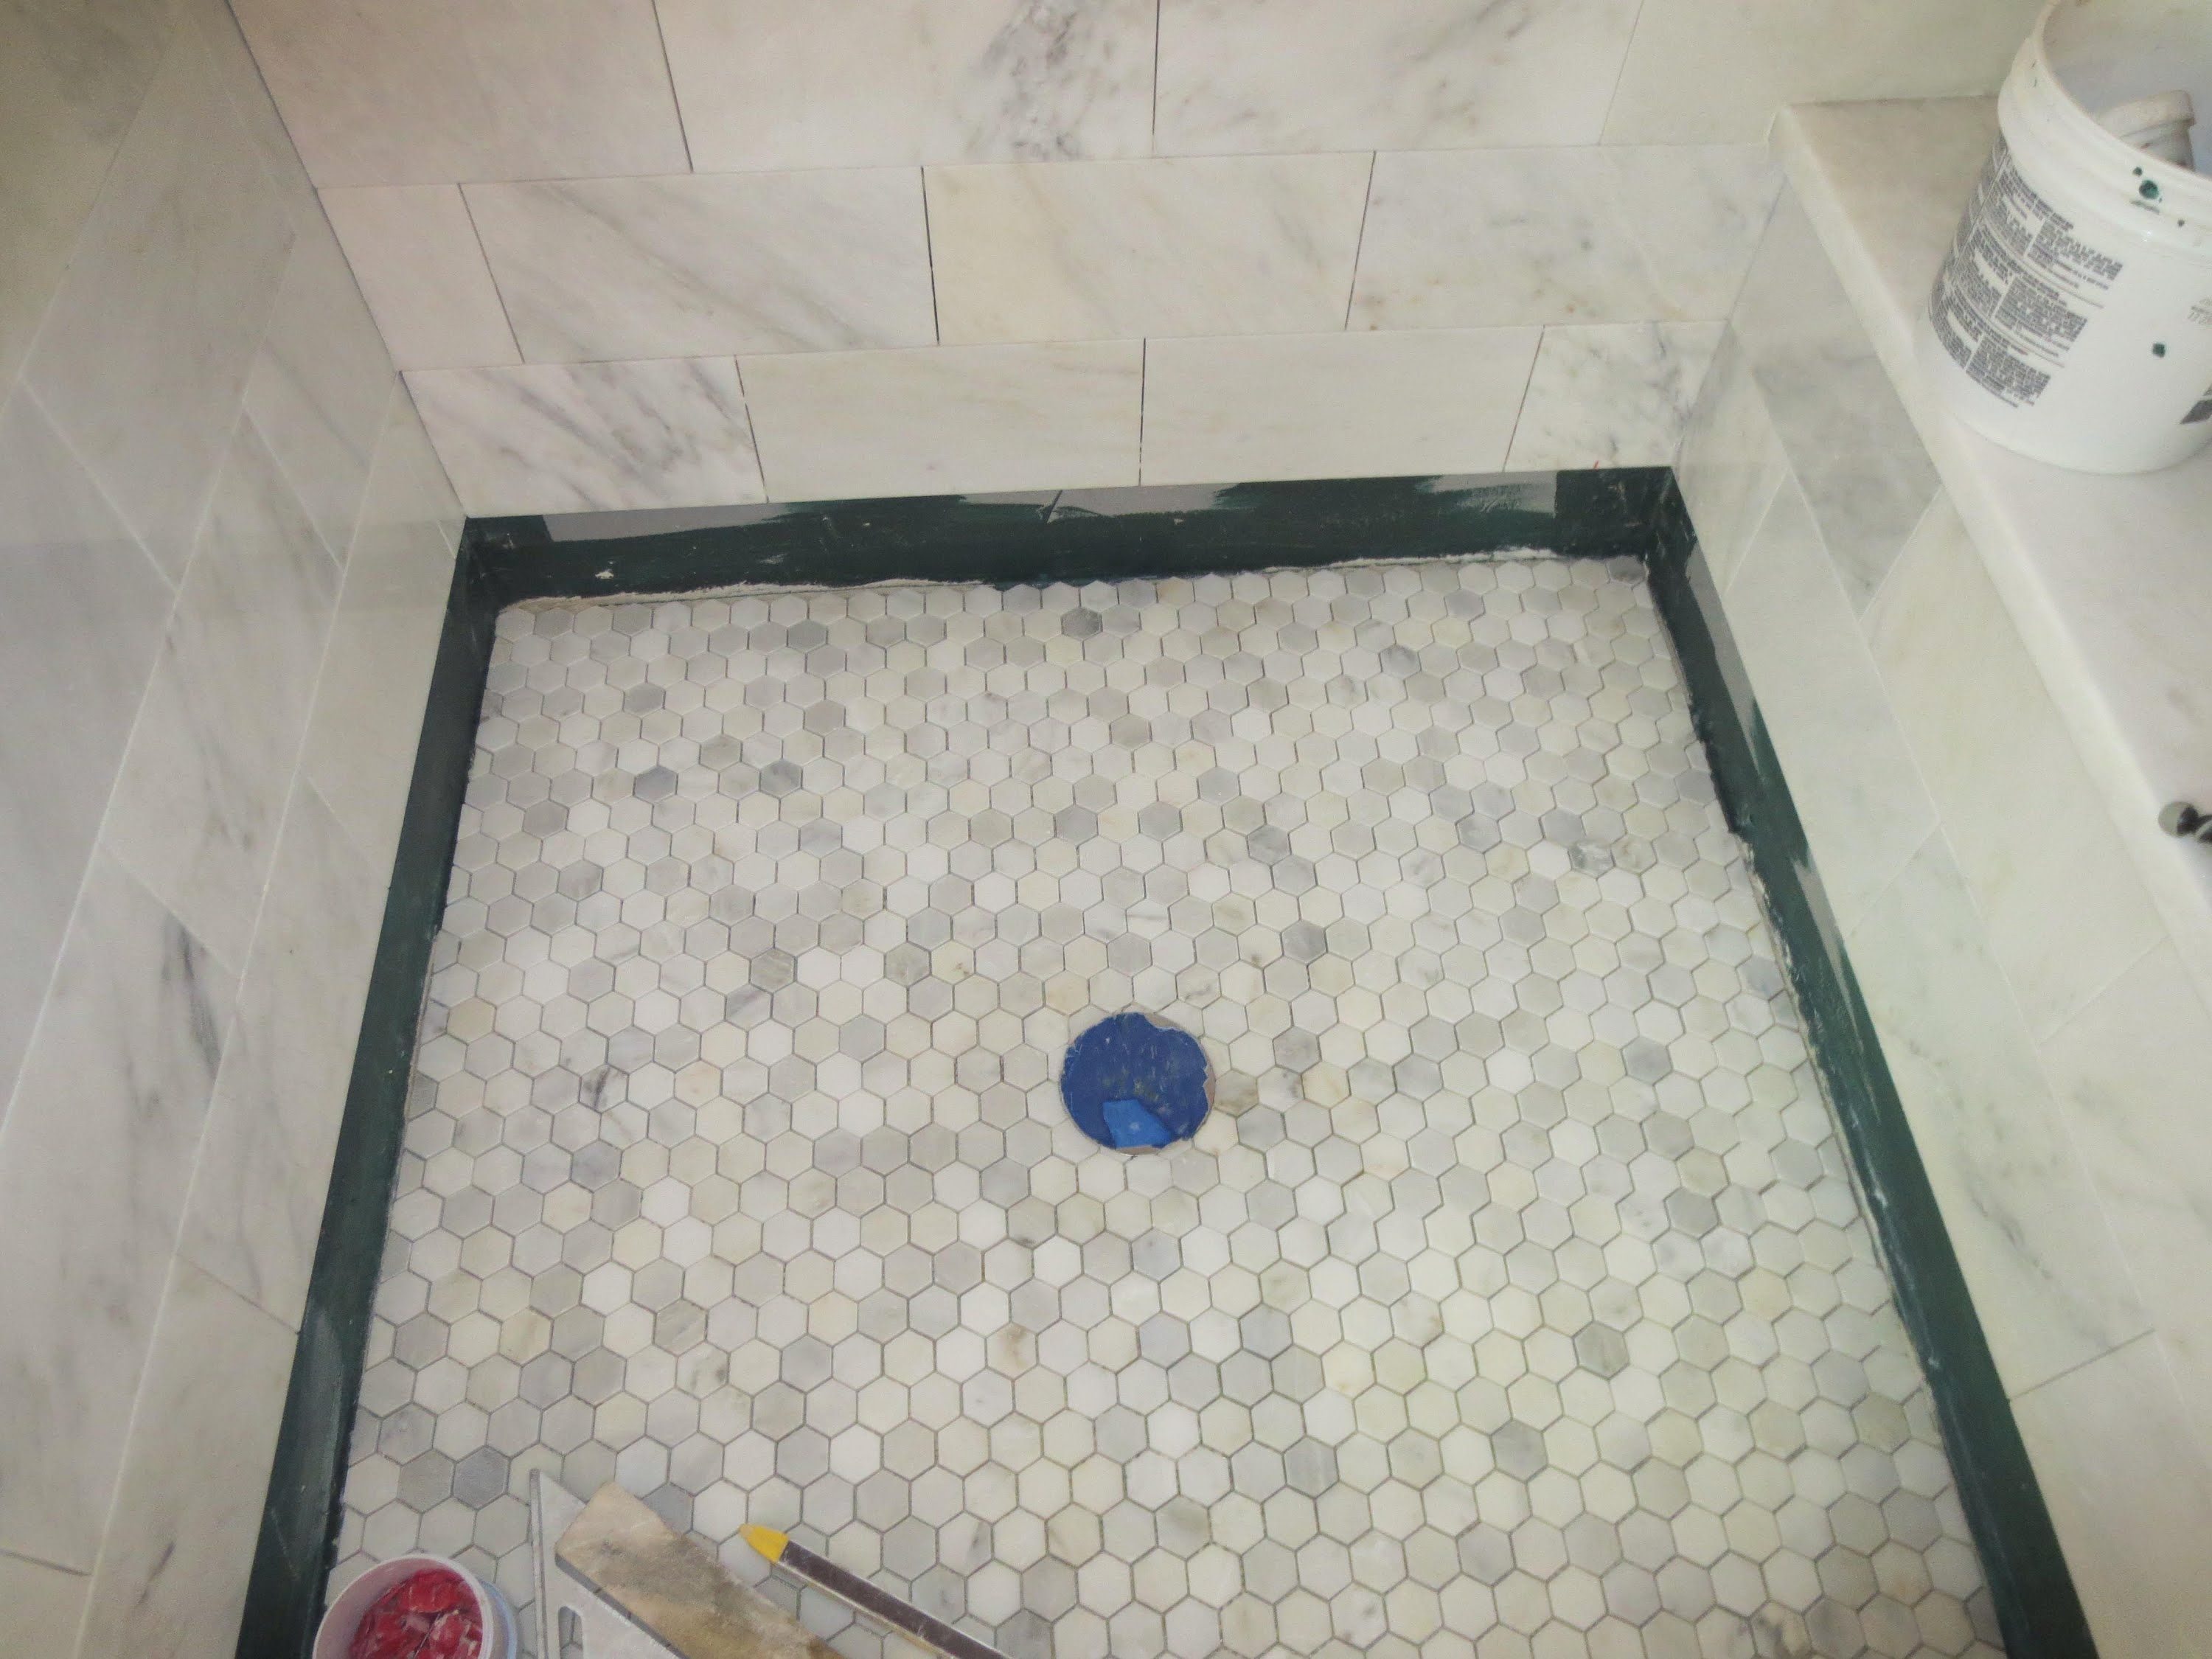 Marble carrara tile bathroom part 5 installing the shower floor marble carrara tile bathroom part 5 installing the shower floor dailygadgetfo Gallery